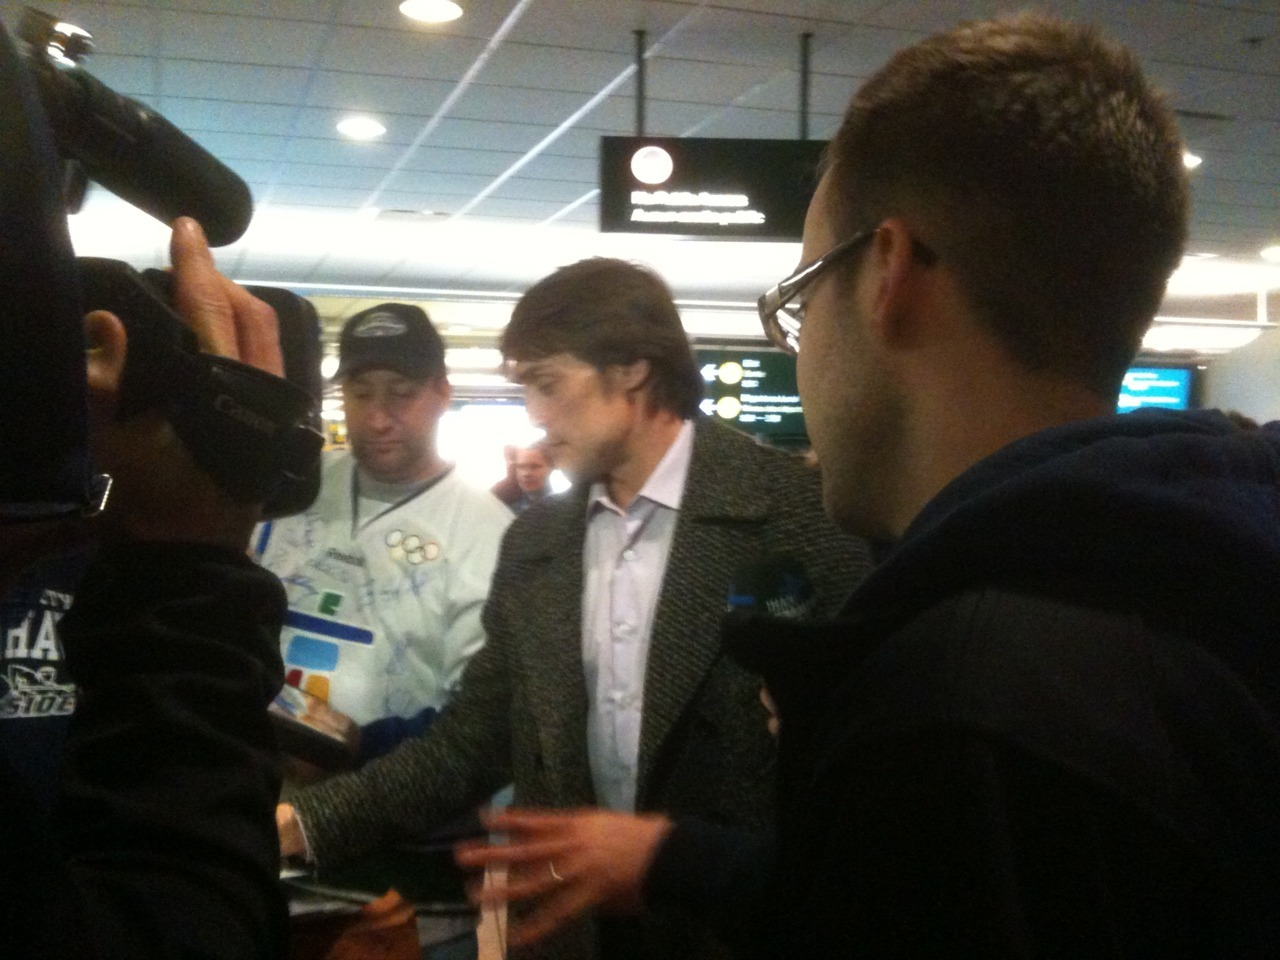 "February 14, 2010 - That's right! Teemu Selanne! He was signing autographs and telling everyone he was stoked to be in the city for the Olympics. When asked who his favourite player was, he answered ""Jari Kurri ofcourse"", to which everyone around laughed. He was very good with the crowd awaiting him in Vancouver."